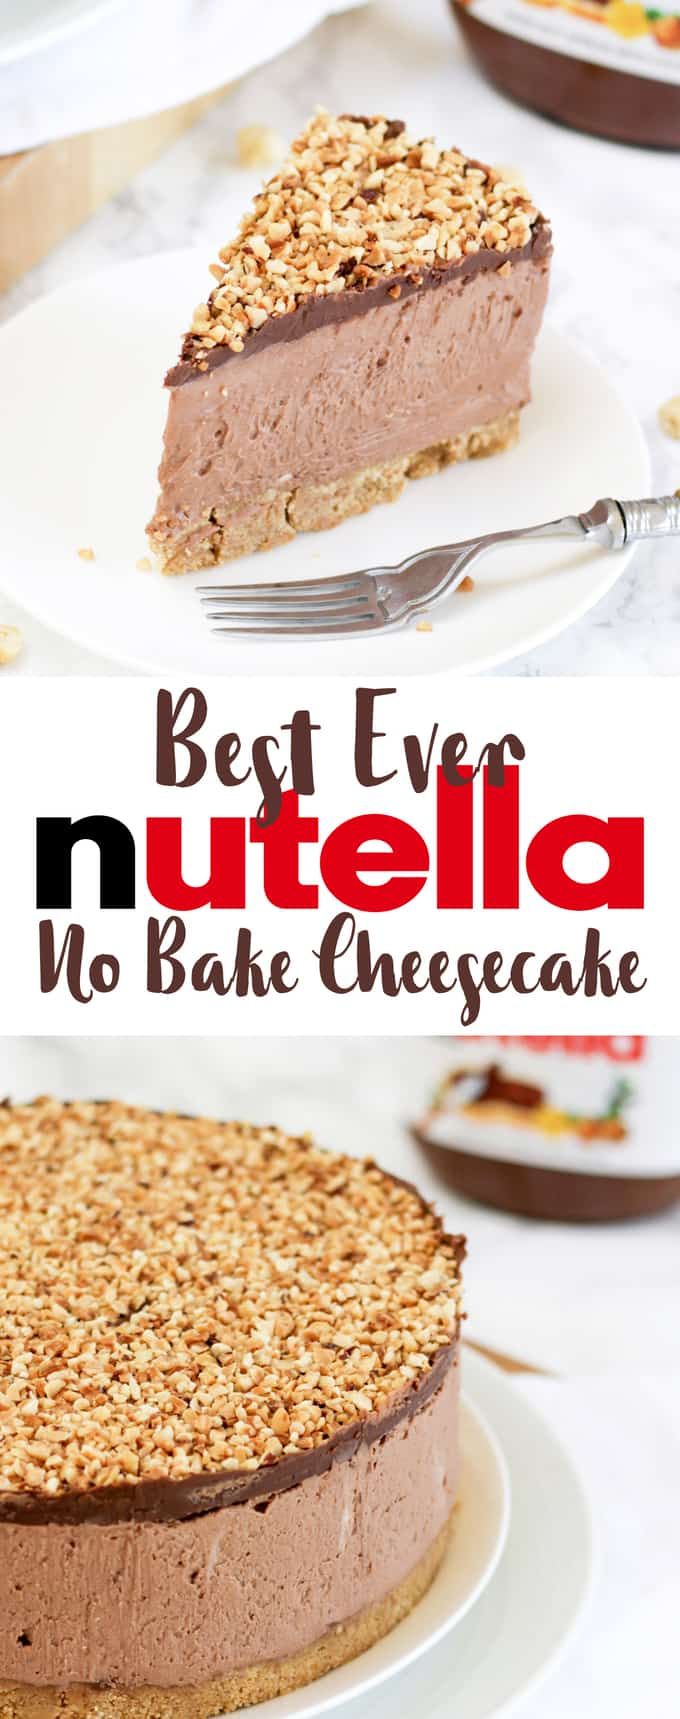 How To Make The Best Ever No Bake Nutella Cheesecake With Video Tutorial